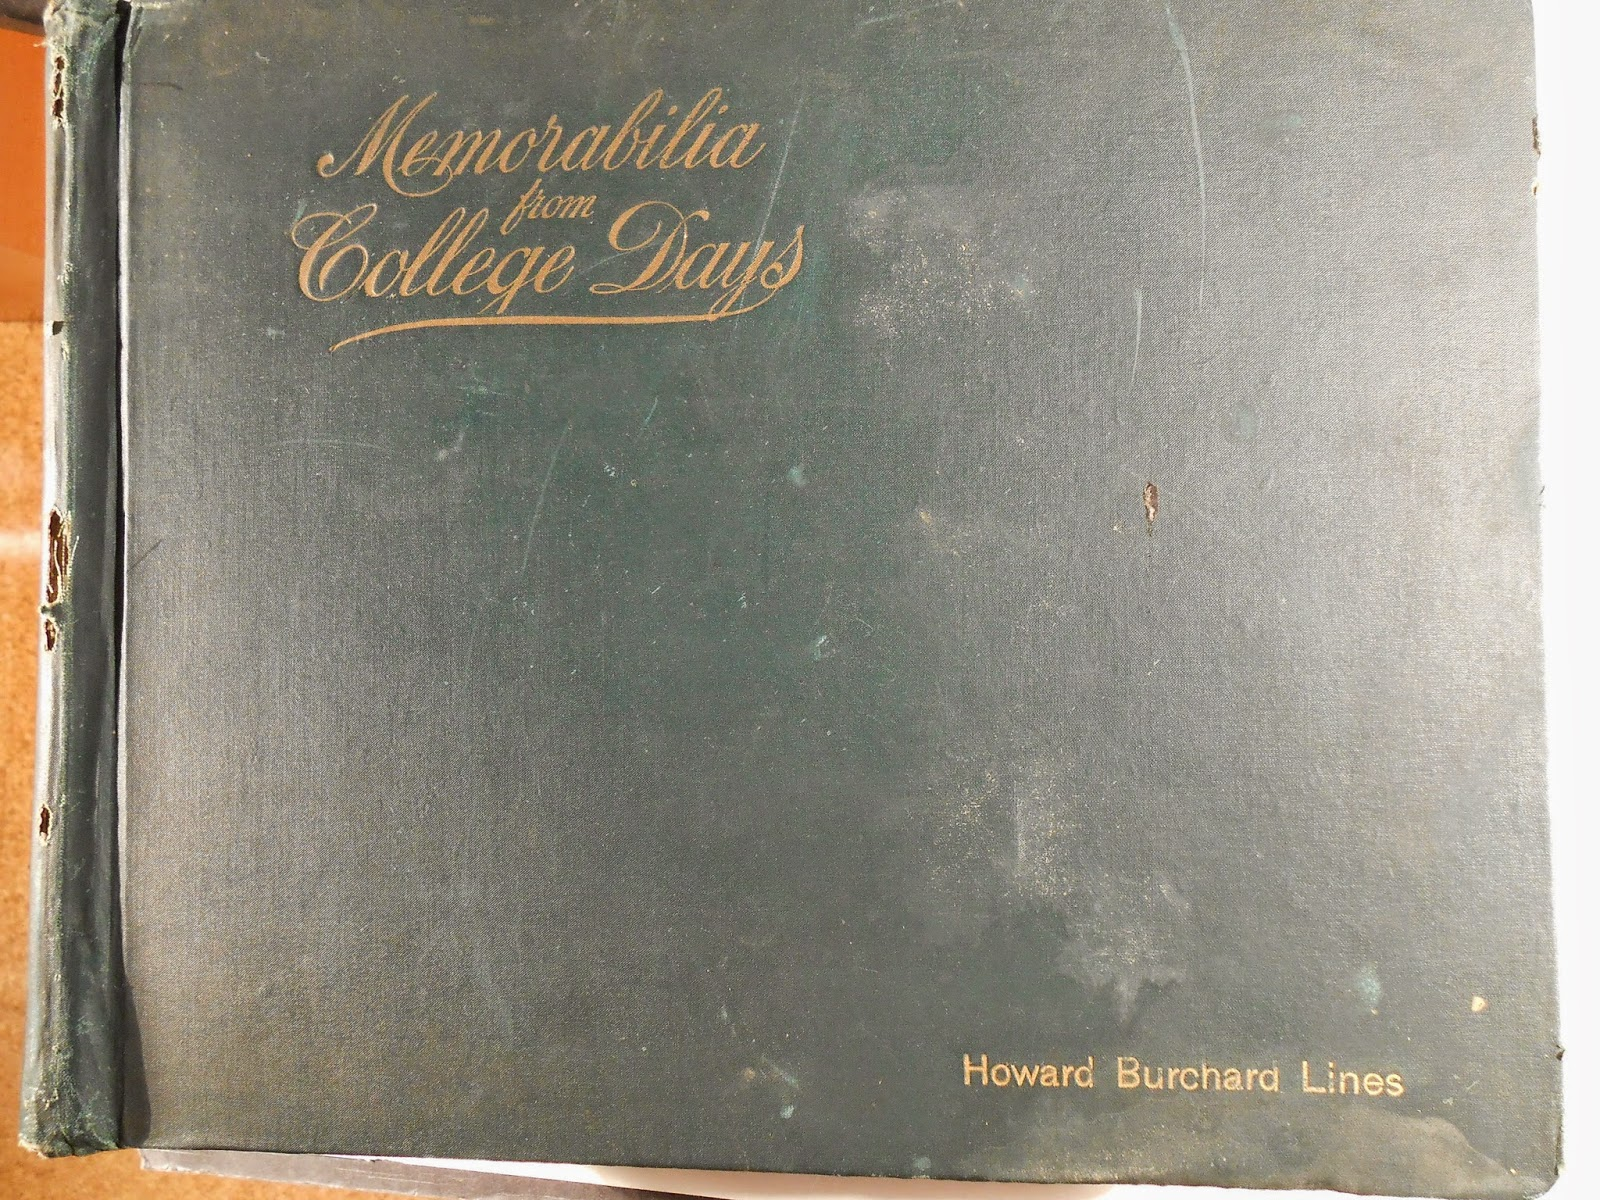 "The cover of a worn book labeled ""Memorabilia from College Days,"" with the name ""Howard Burchard Lines"" embossed on it."